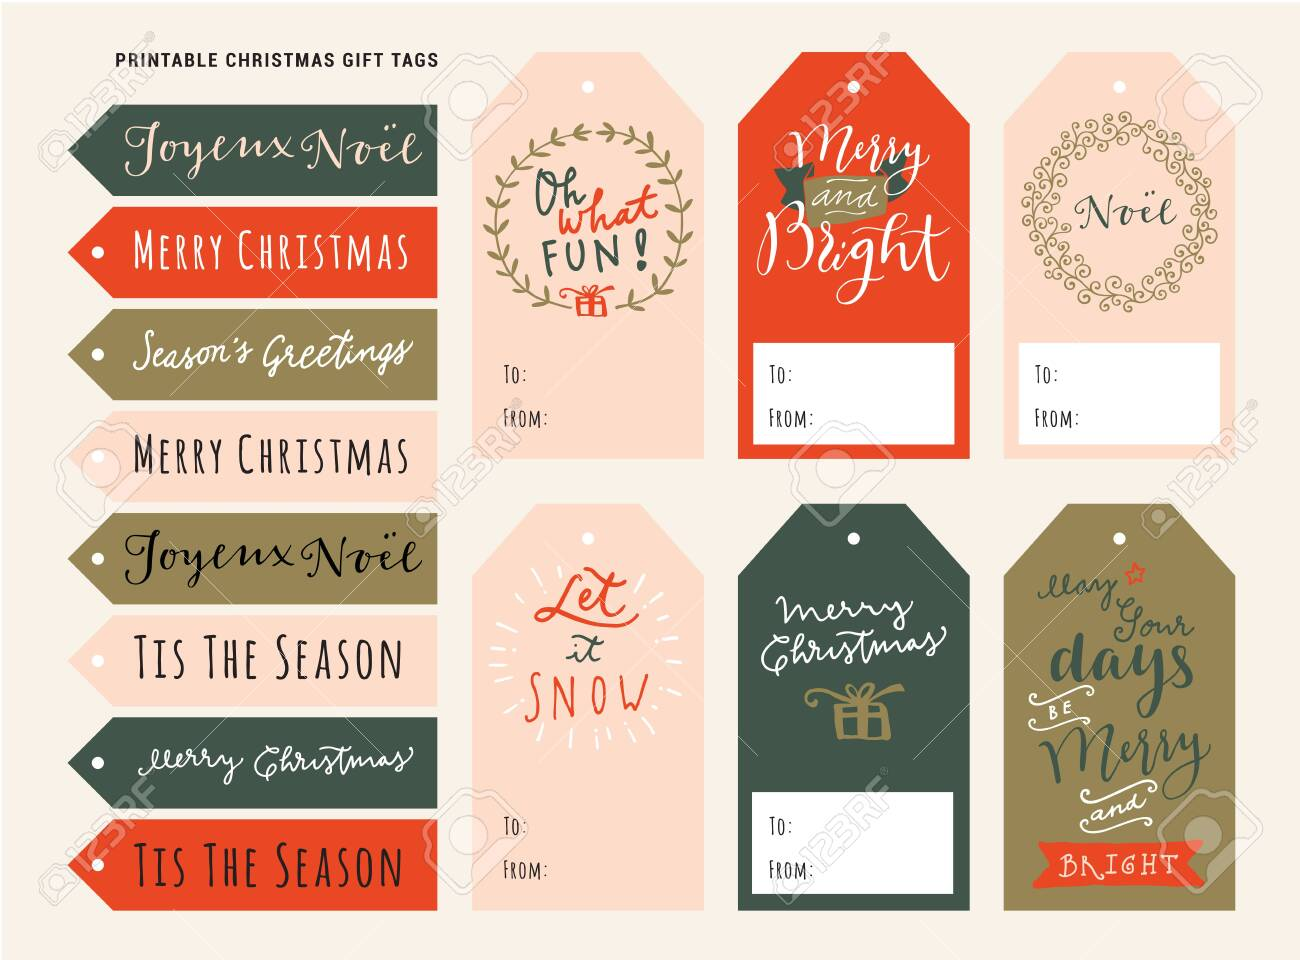 Printable Personalized Merry Christmas Gift Tags Holiday Season Royalty Free Cliparts Vectors And Stock Illustration Image 134637763